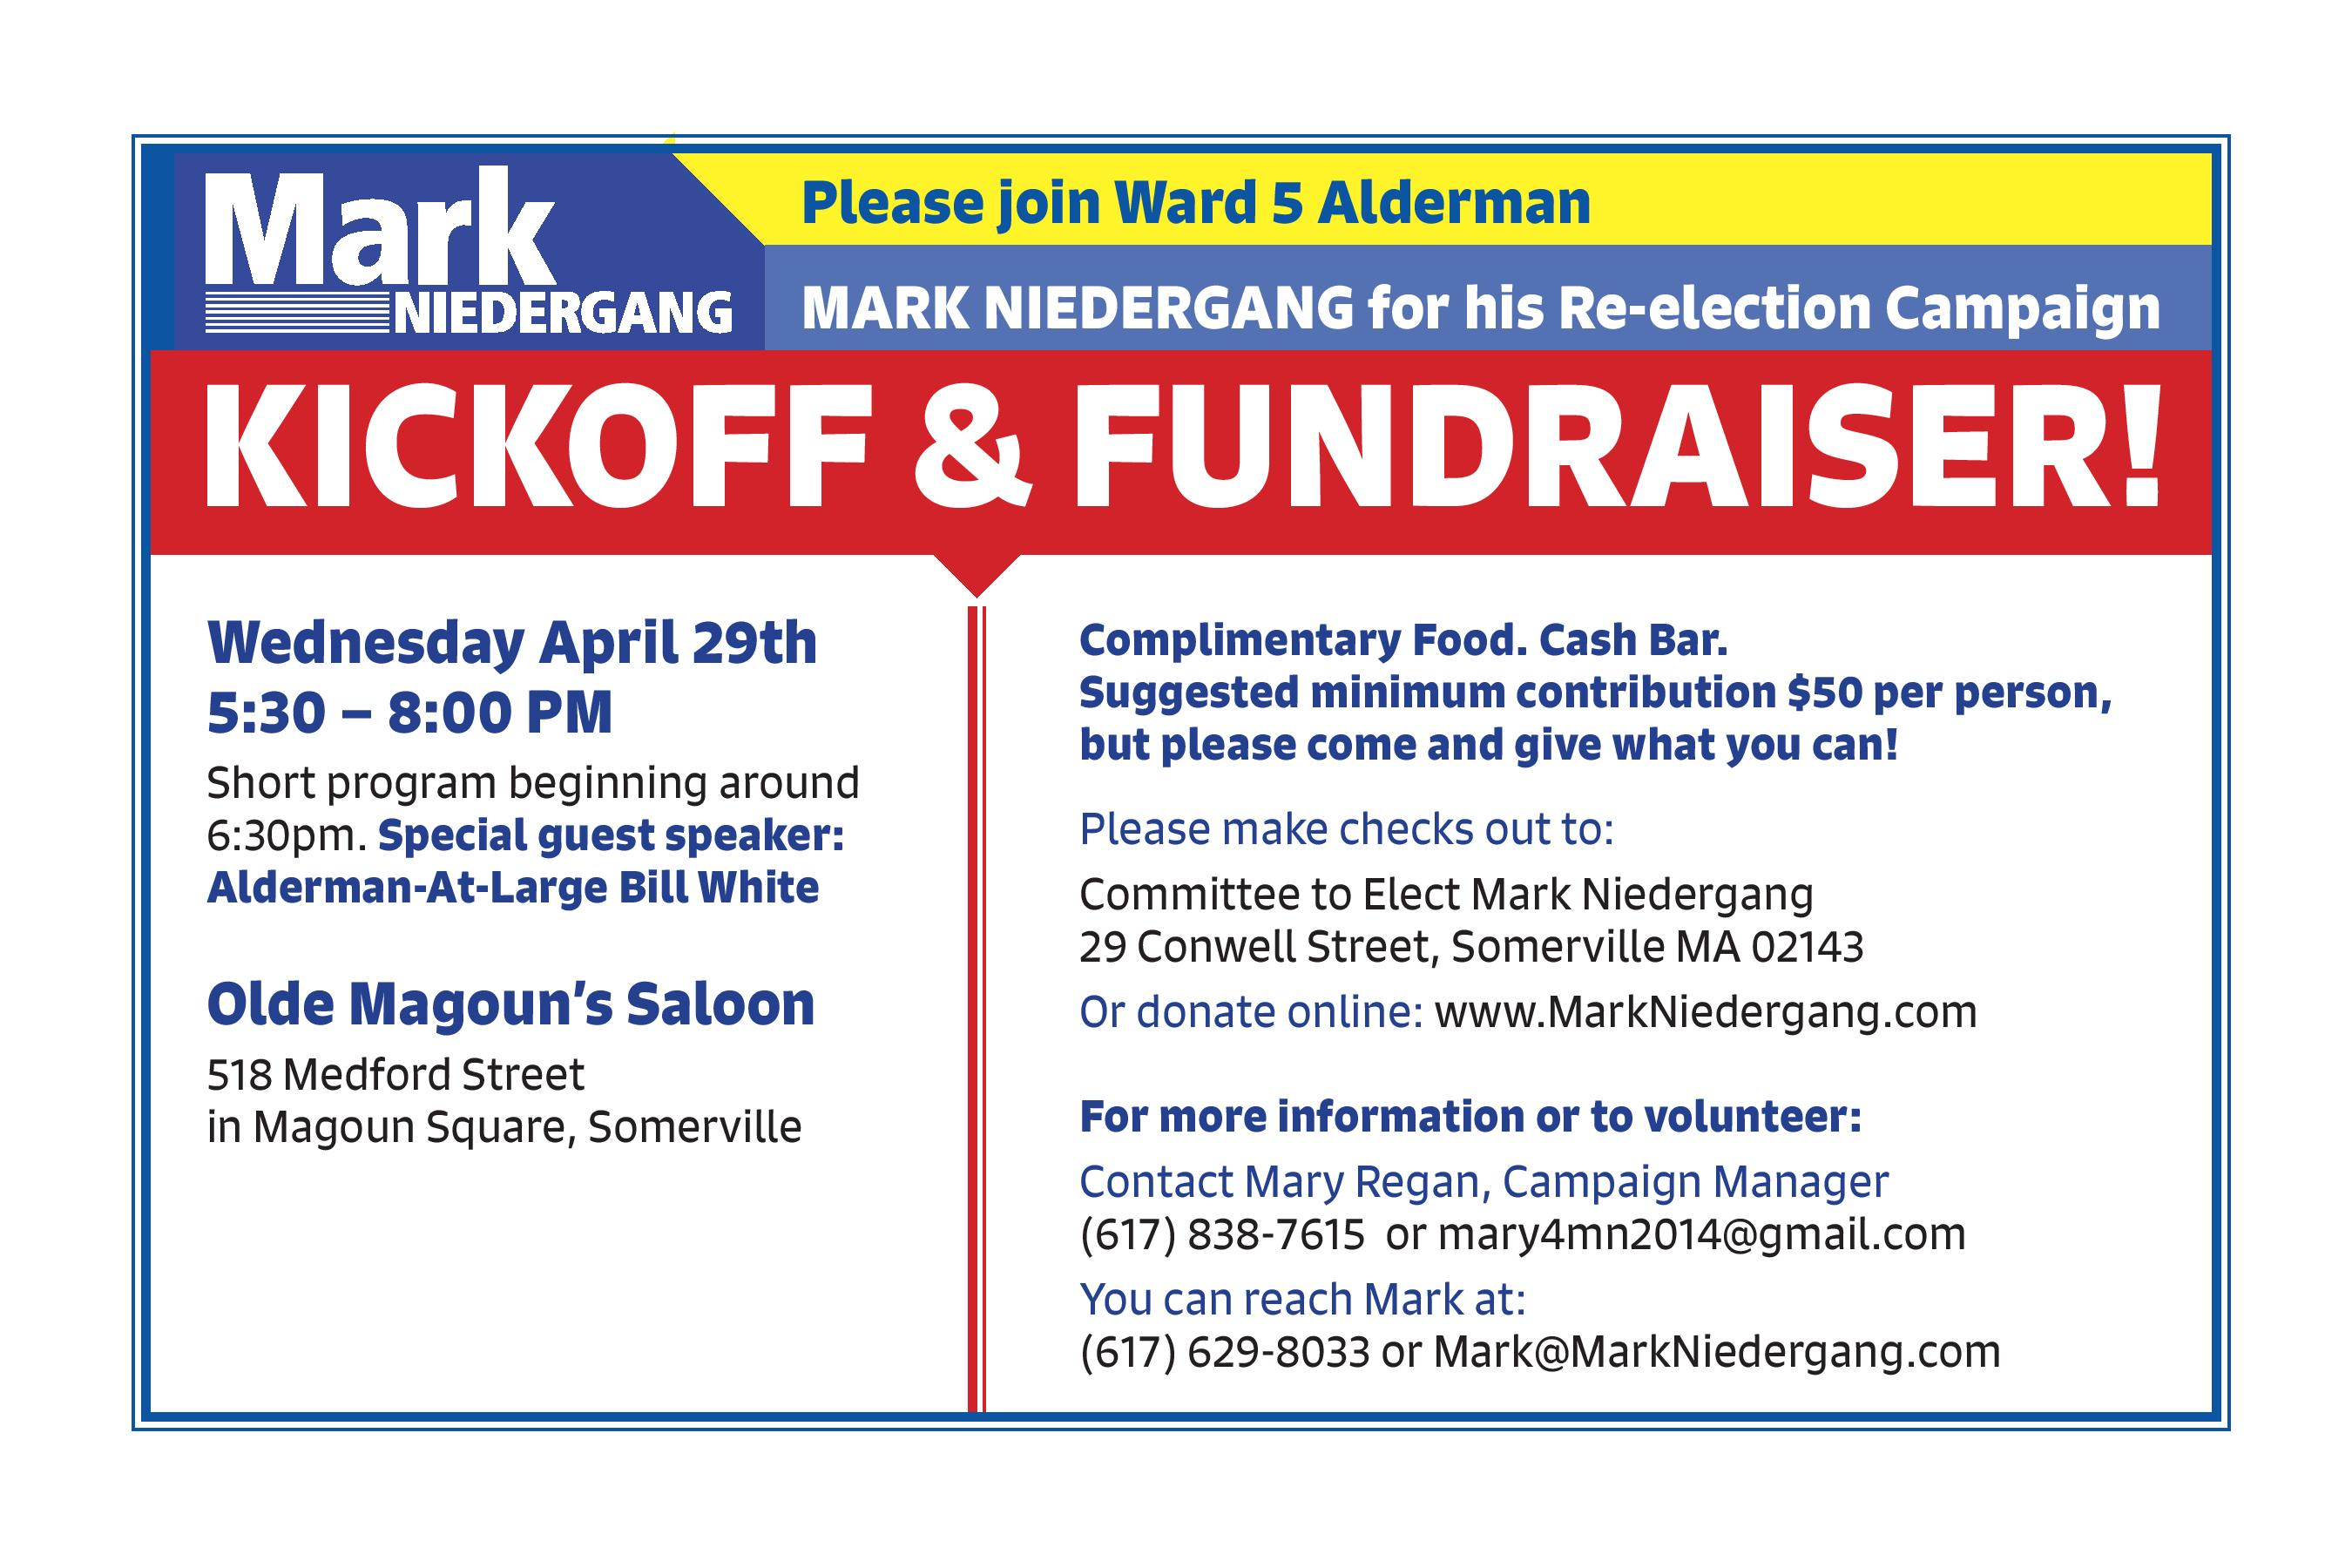 Re-election Kickoff and Fundraiser